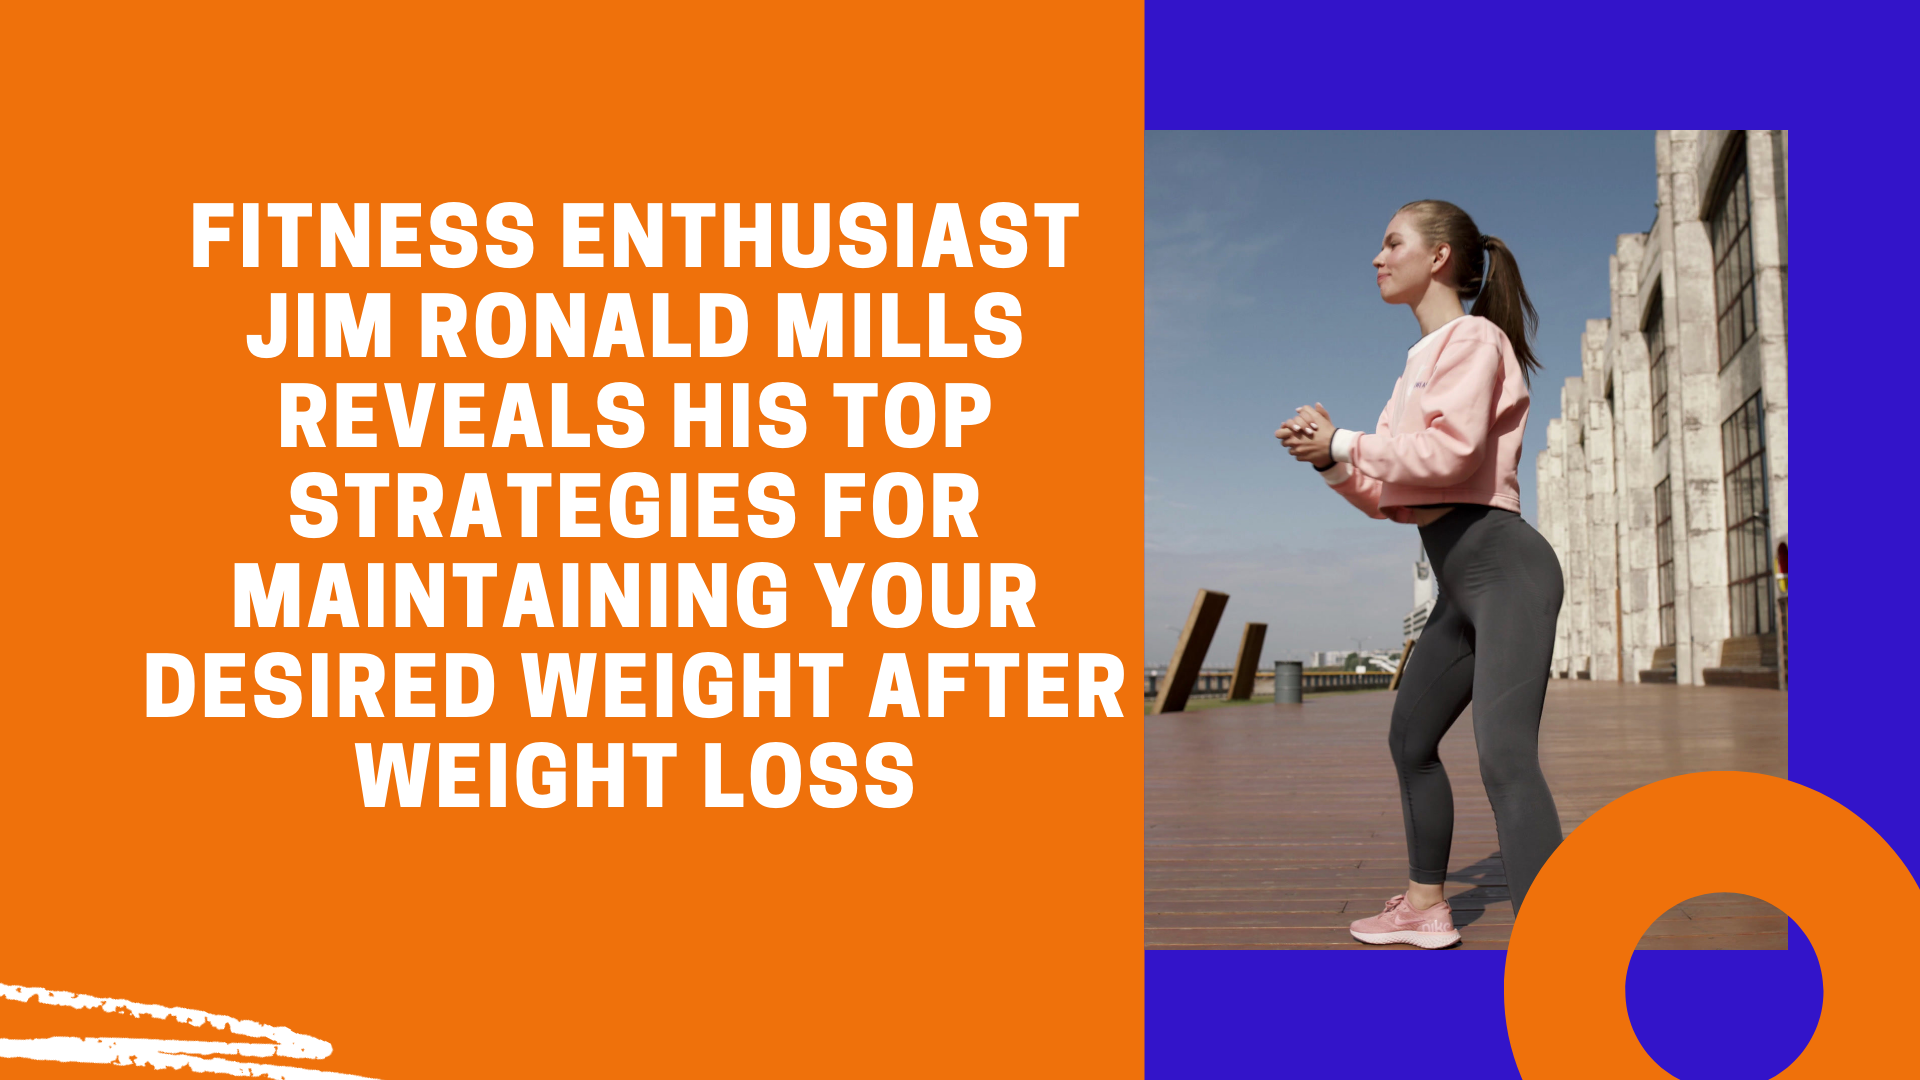 Jim Ronald Mills Enthusiast Desired Weight 1